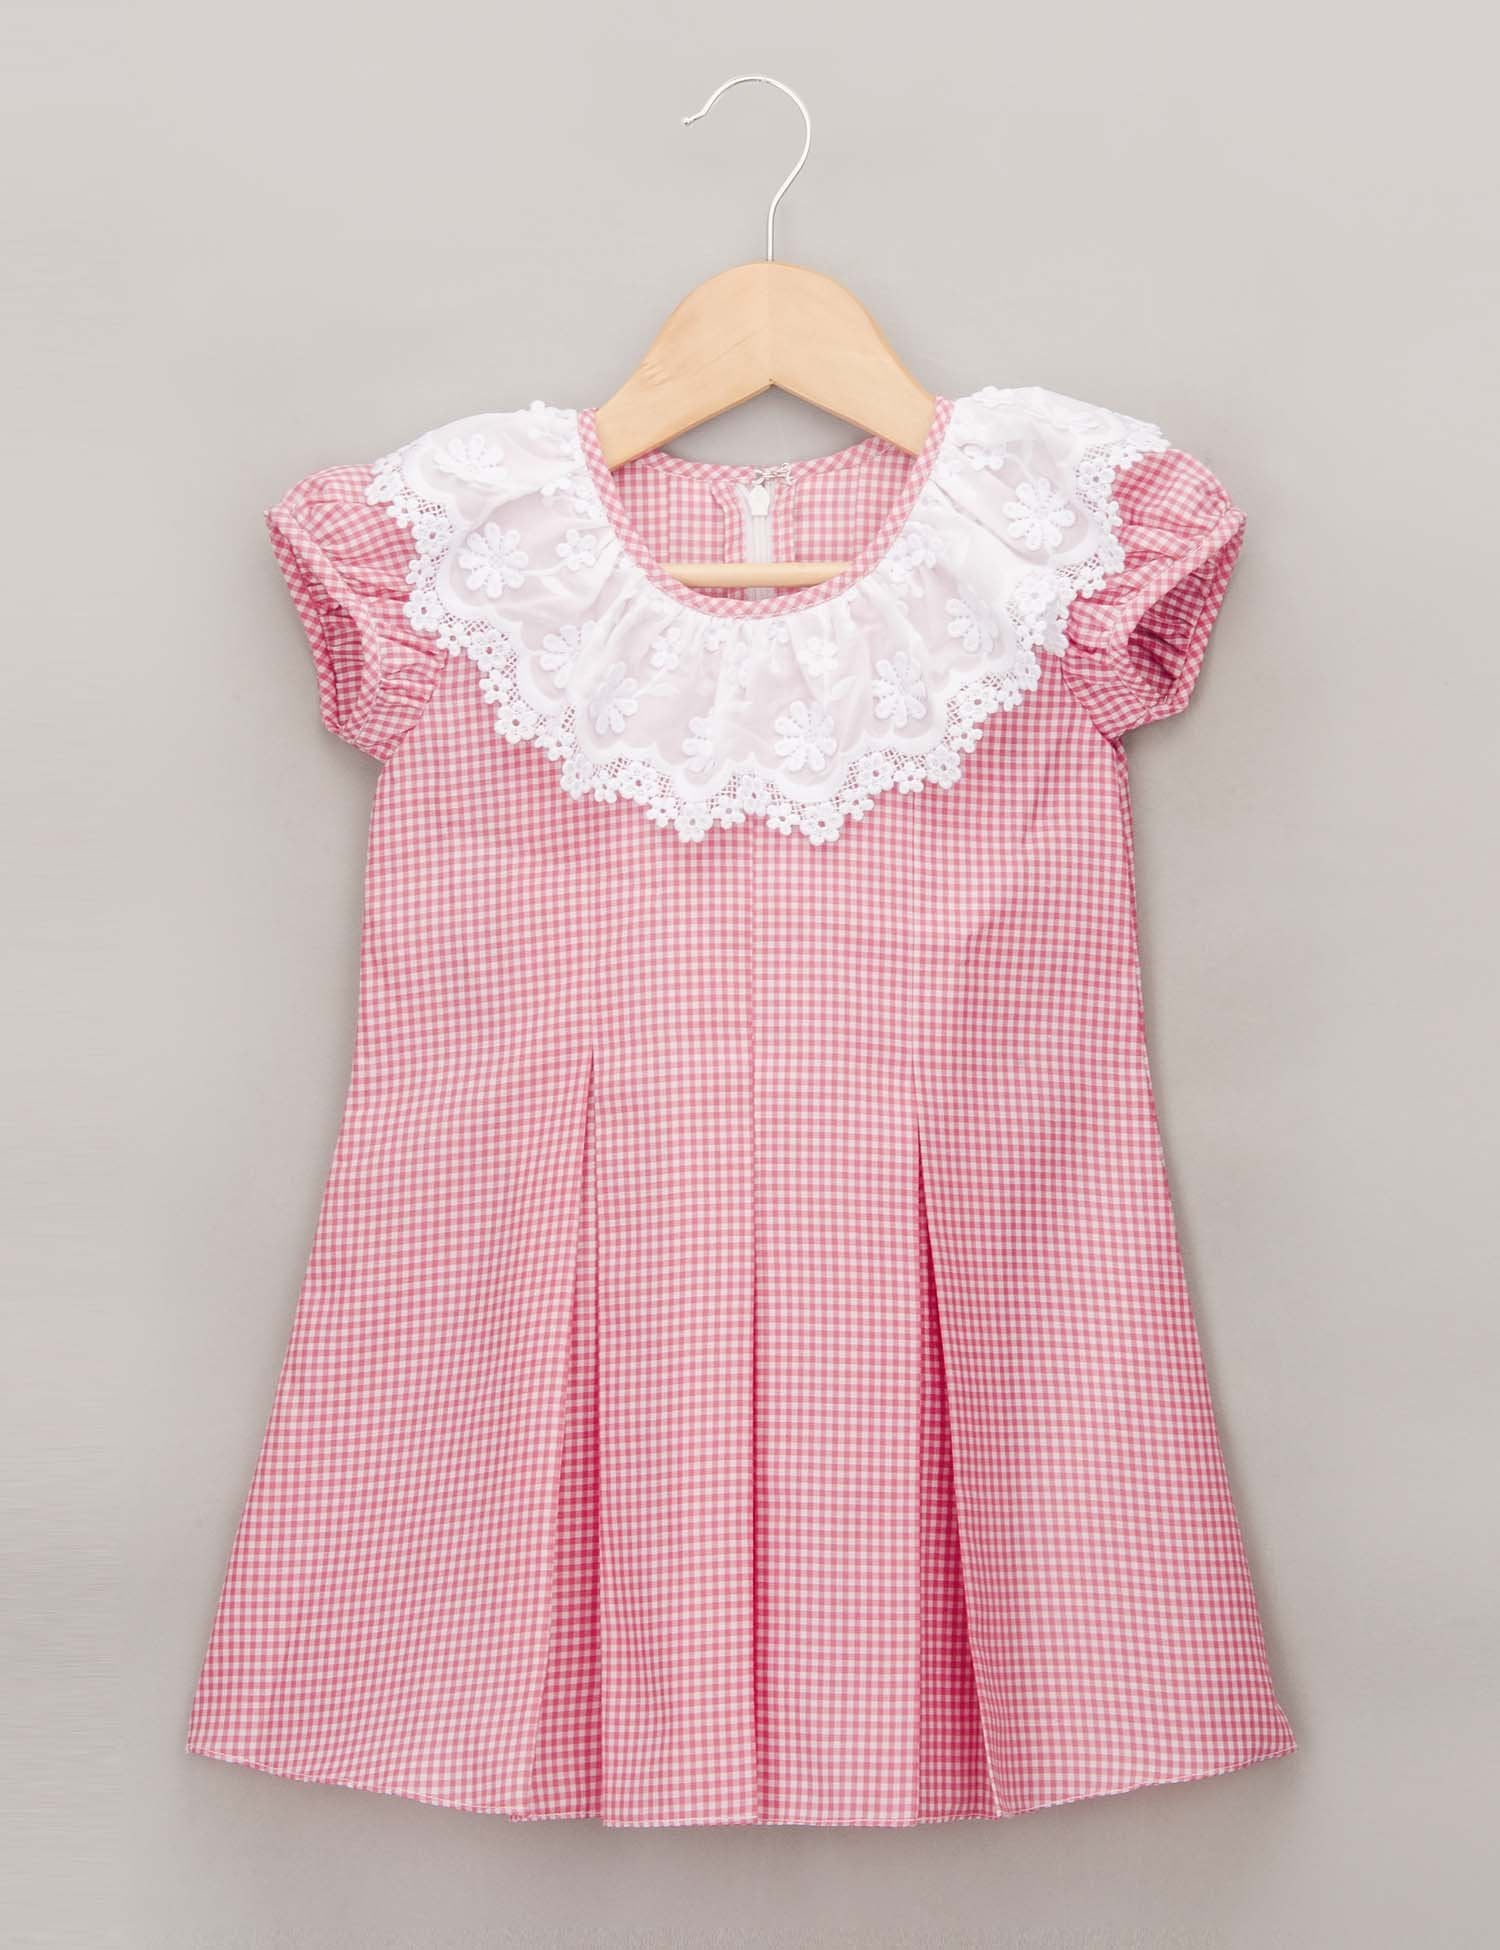 Pink Checked Dress with Ruffled Lace Collar for Girls